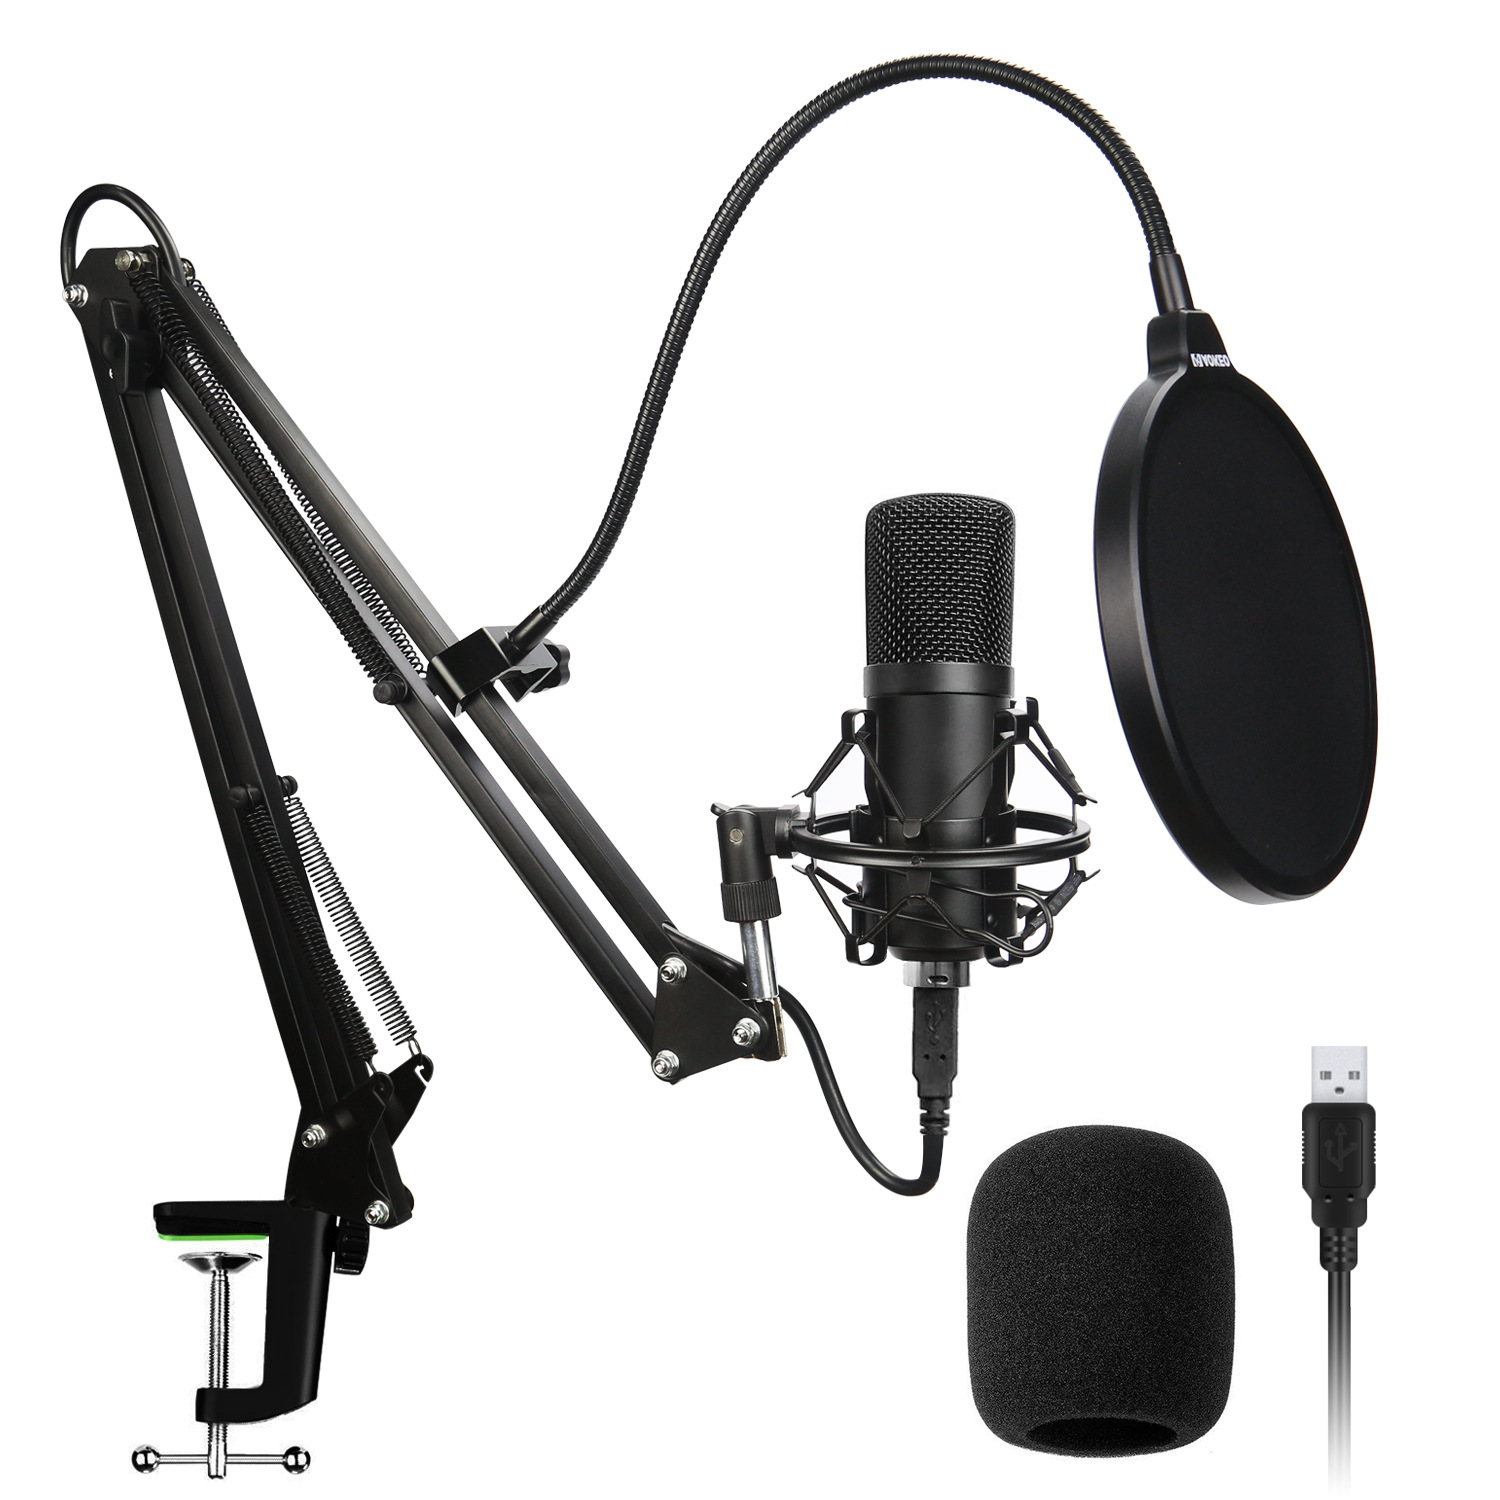 USB microphone gooseneck suspension microphone set 192KHz 24Bit high sampling rate condenser microphone for recording for